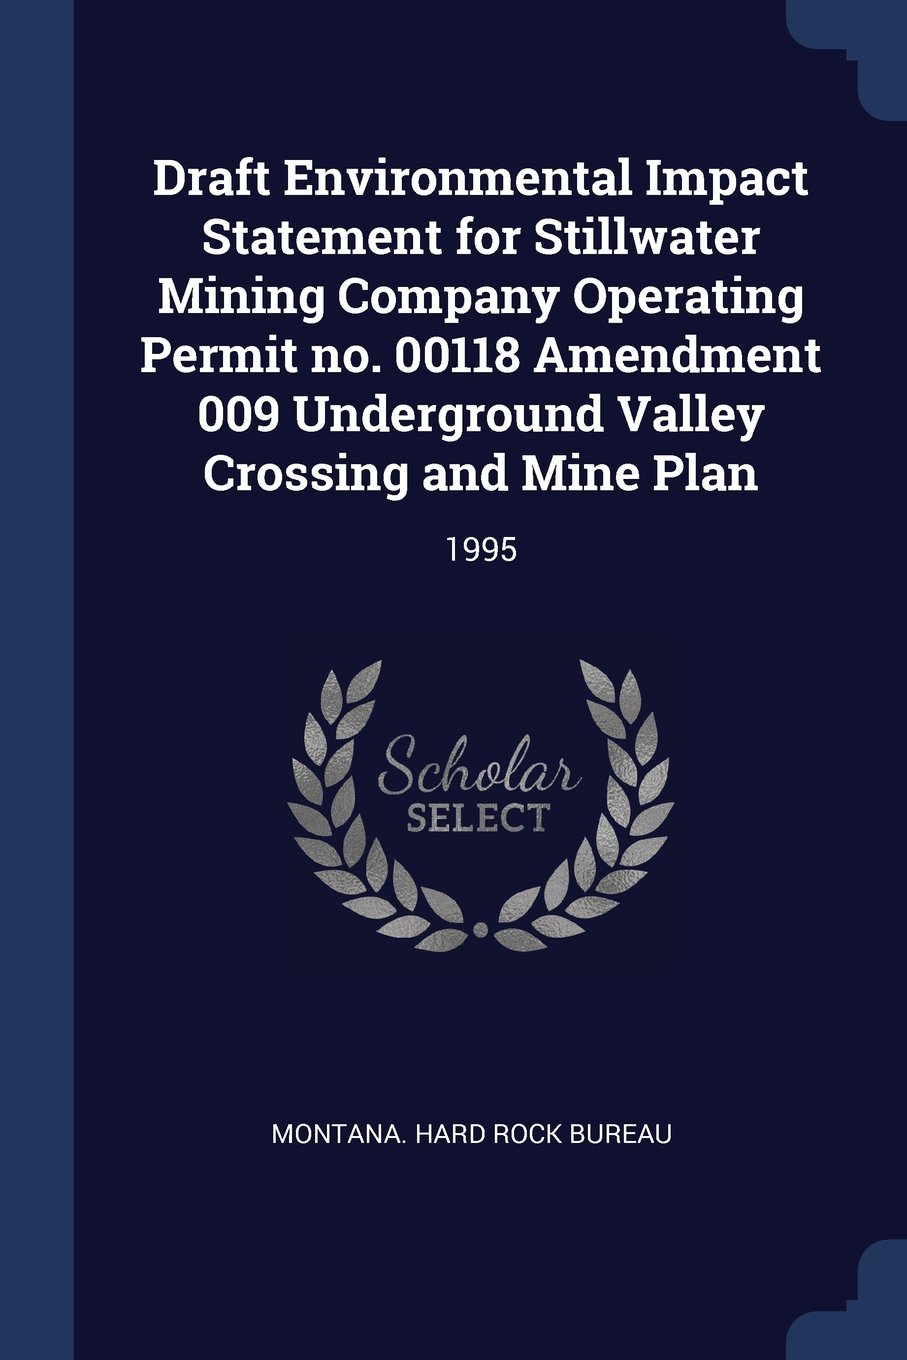 Download Draft Environmental Impact Statement for Stillwater Mining Company Operating Permit no. 00118 Amendment 009 Underground Valley Crossing and Mine Plan: 1995 ebook